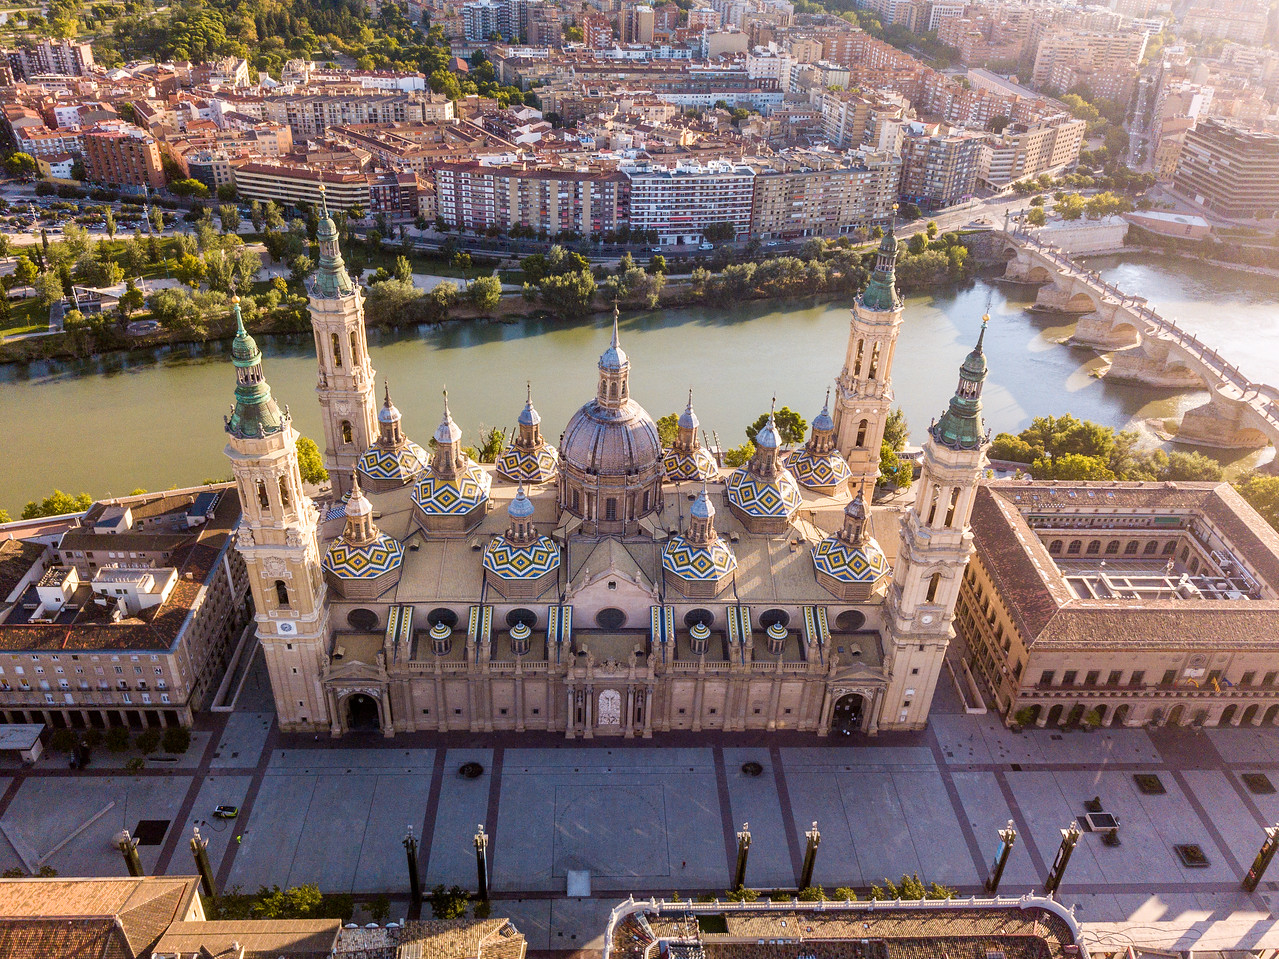 Drone Photo of Zaragoza Zaragoza's Basilica of Our Lady of the Pillar or Nuestra Señora del Pilar